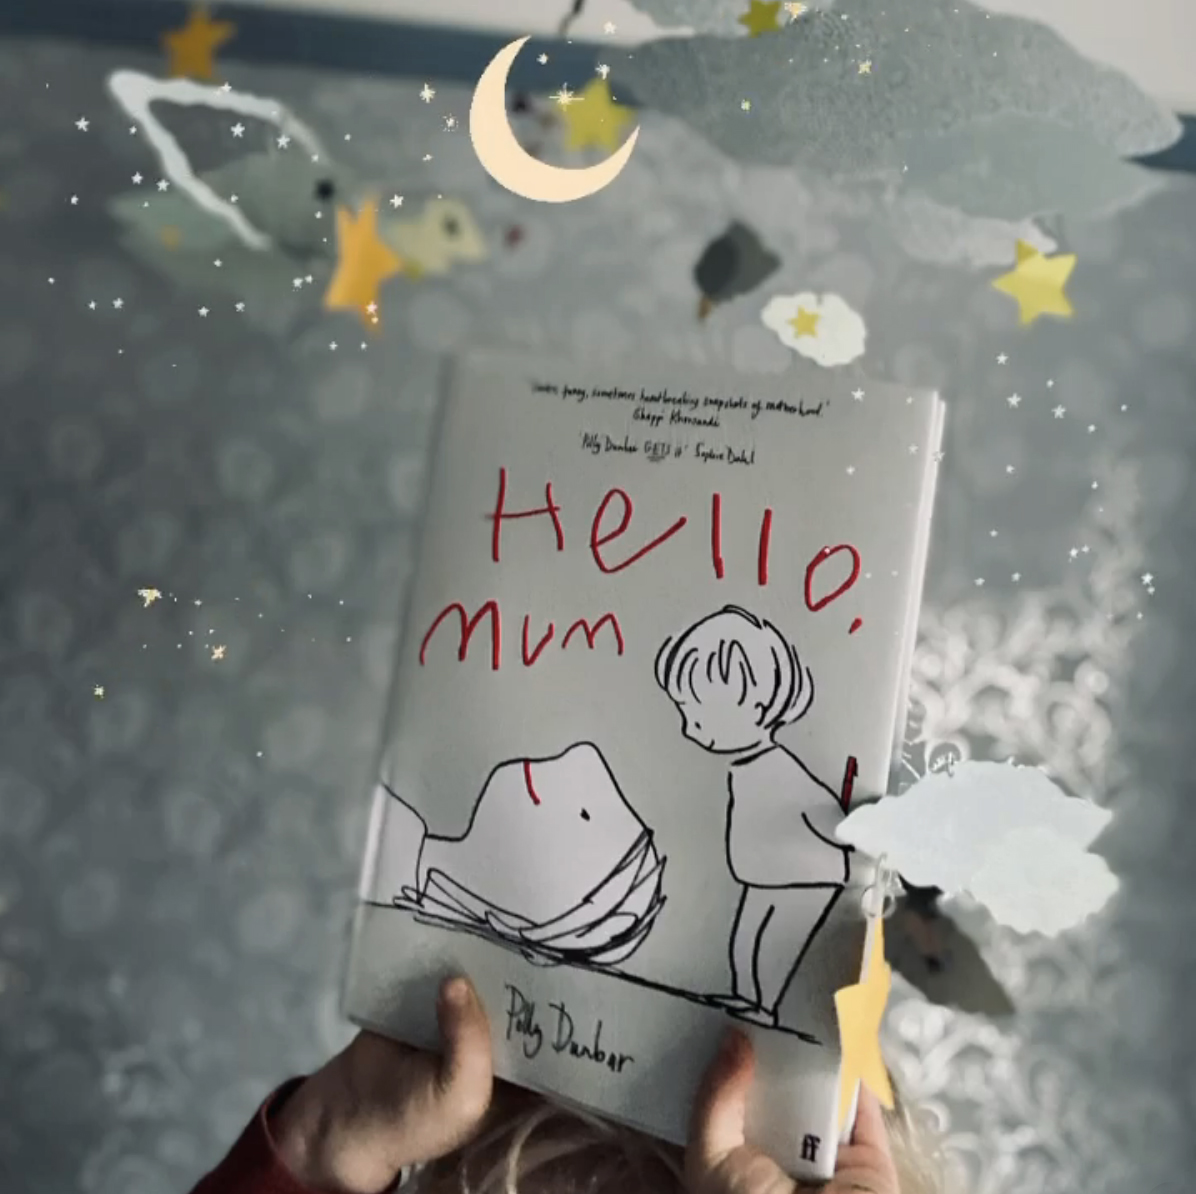 'Hello Mum' by Polly Dunbar. Published by Faber & Faber